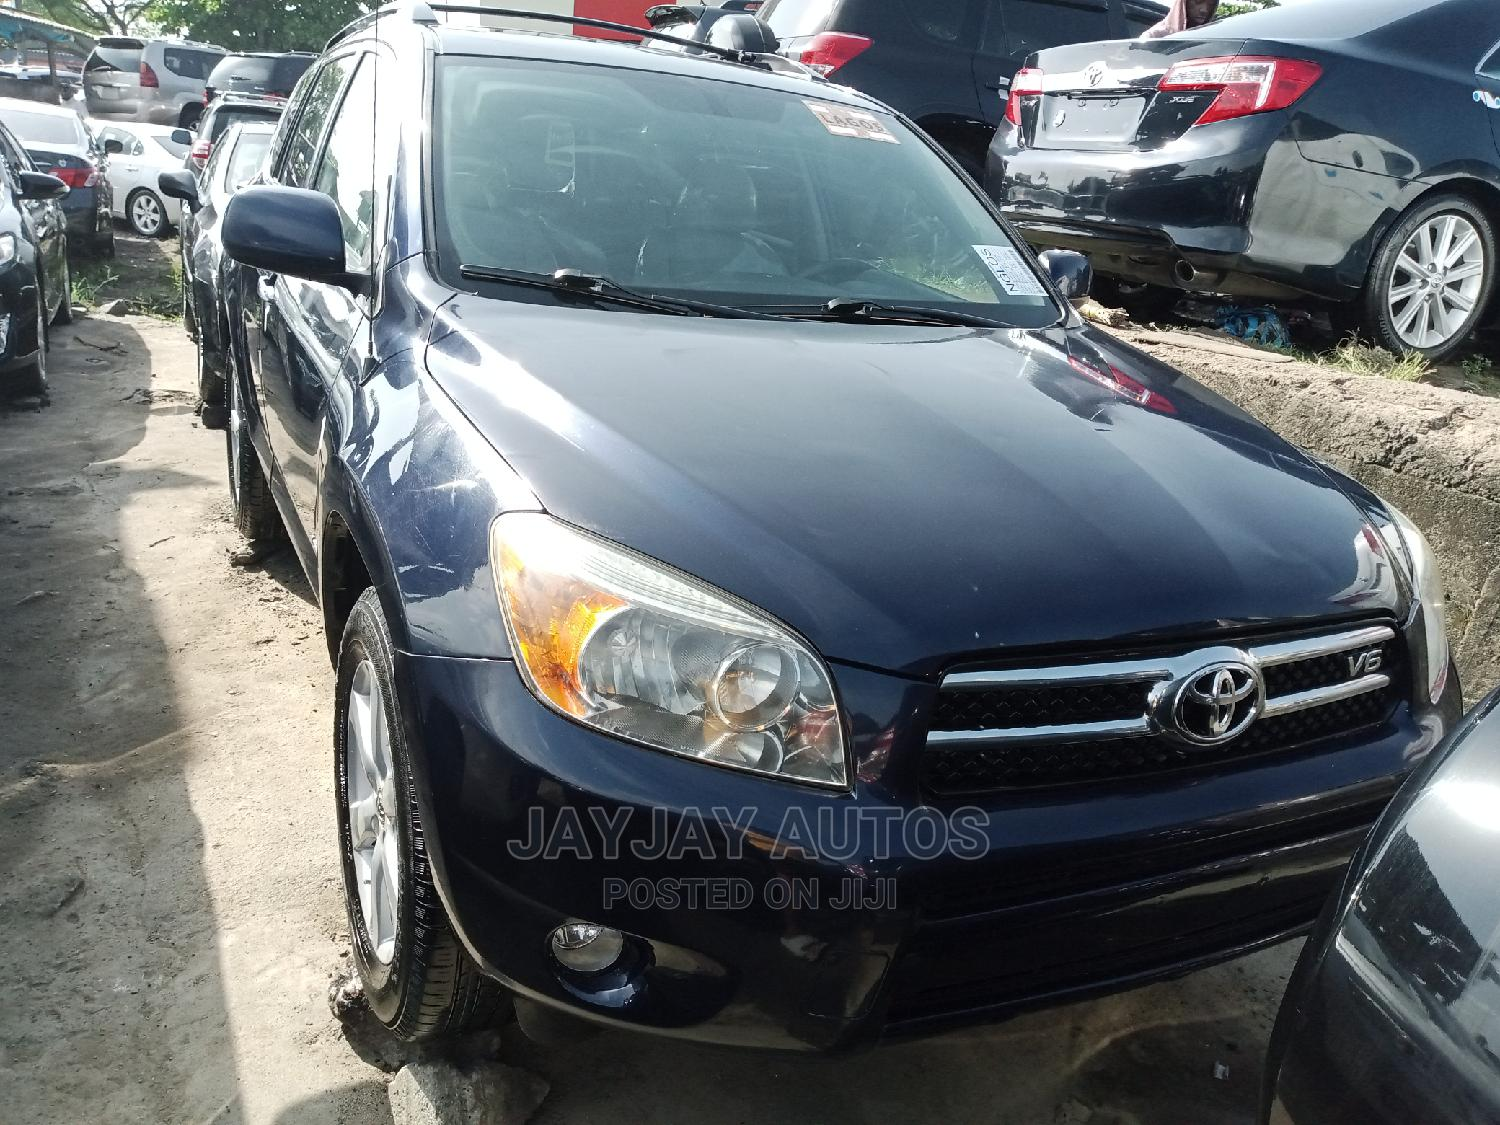 Toyota RAV4 2008 Limited V6 Blue   Cars for sale in Apapa, Lagos State, Nigeria